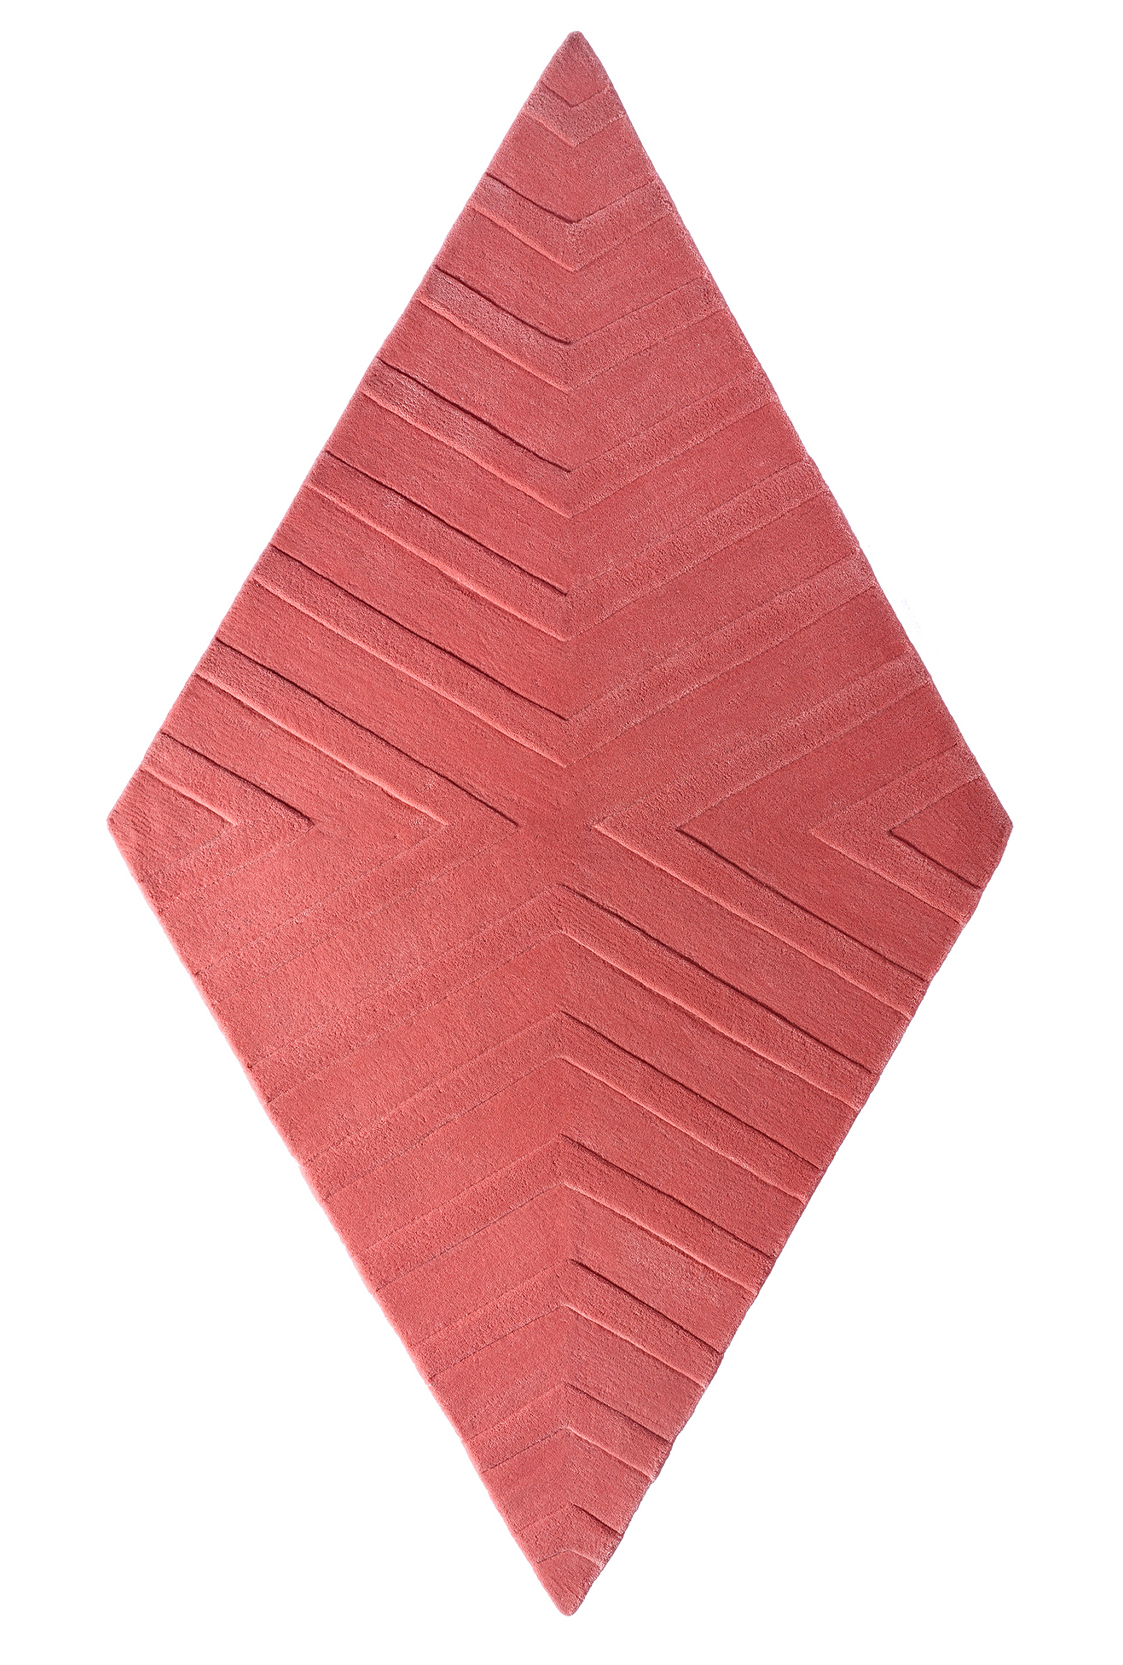 Kinder Origami Diamond Cotton Candy Zebra Blind Kinder Modern